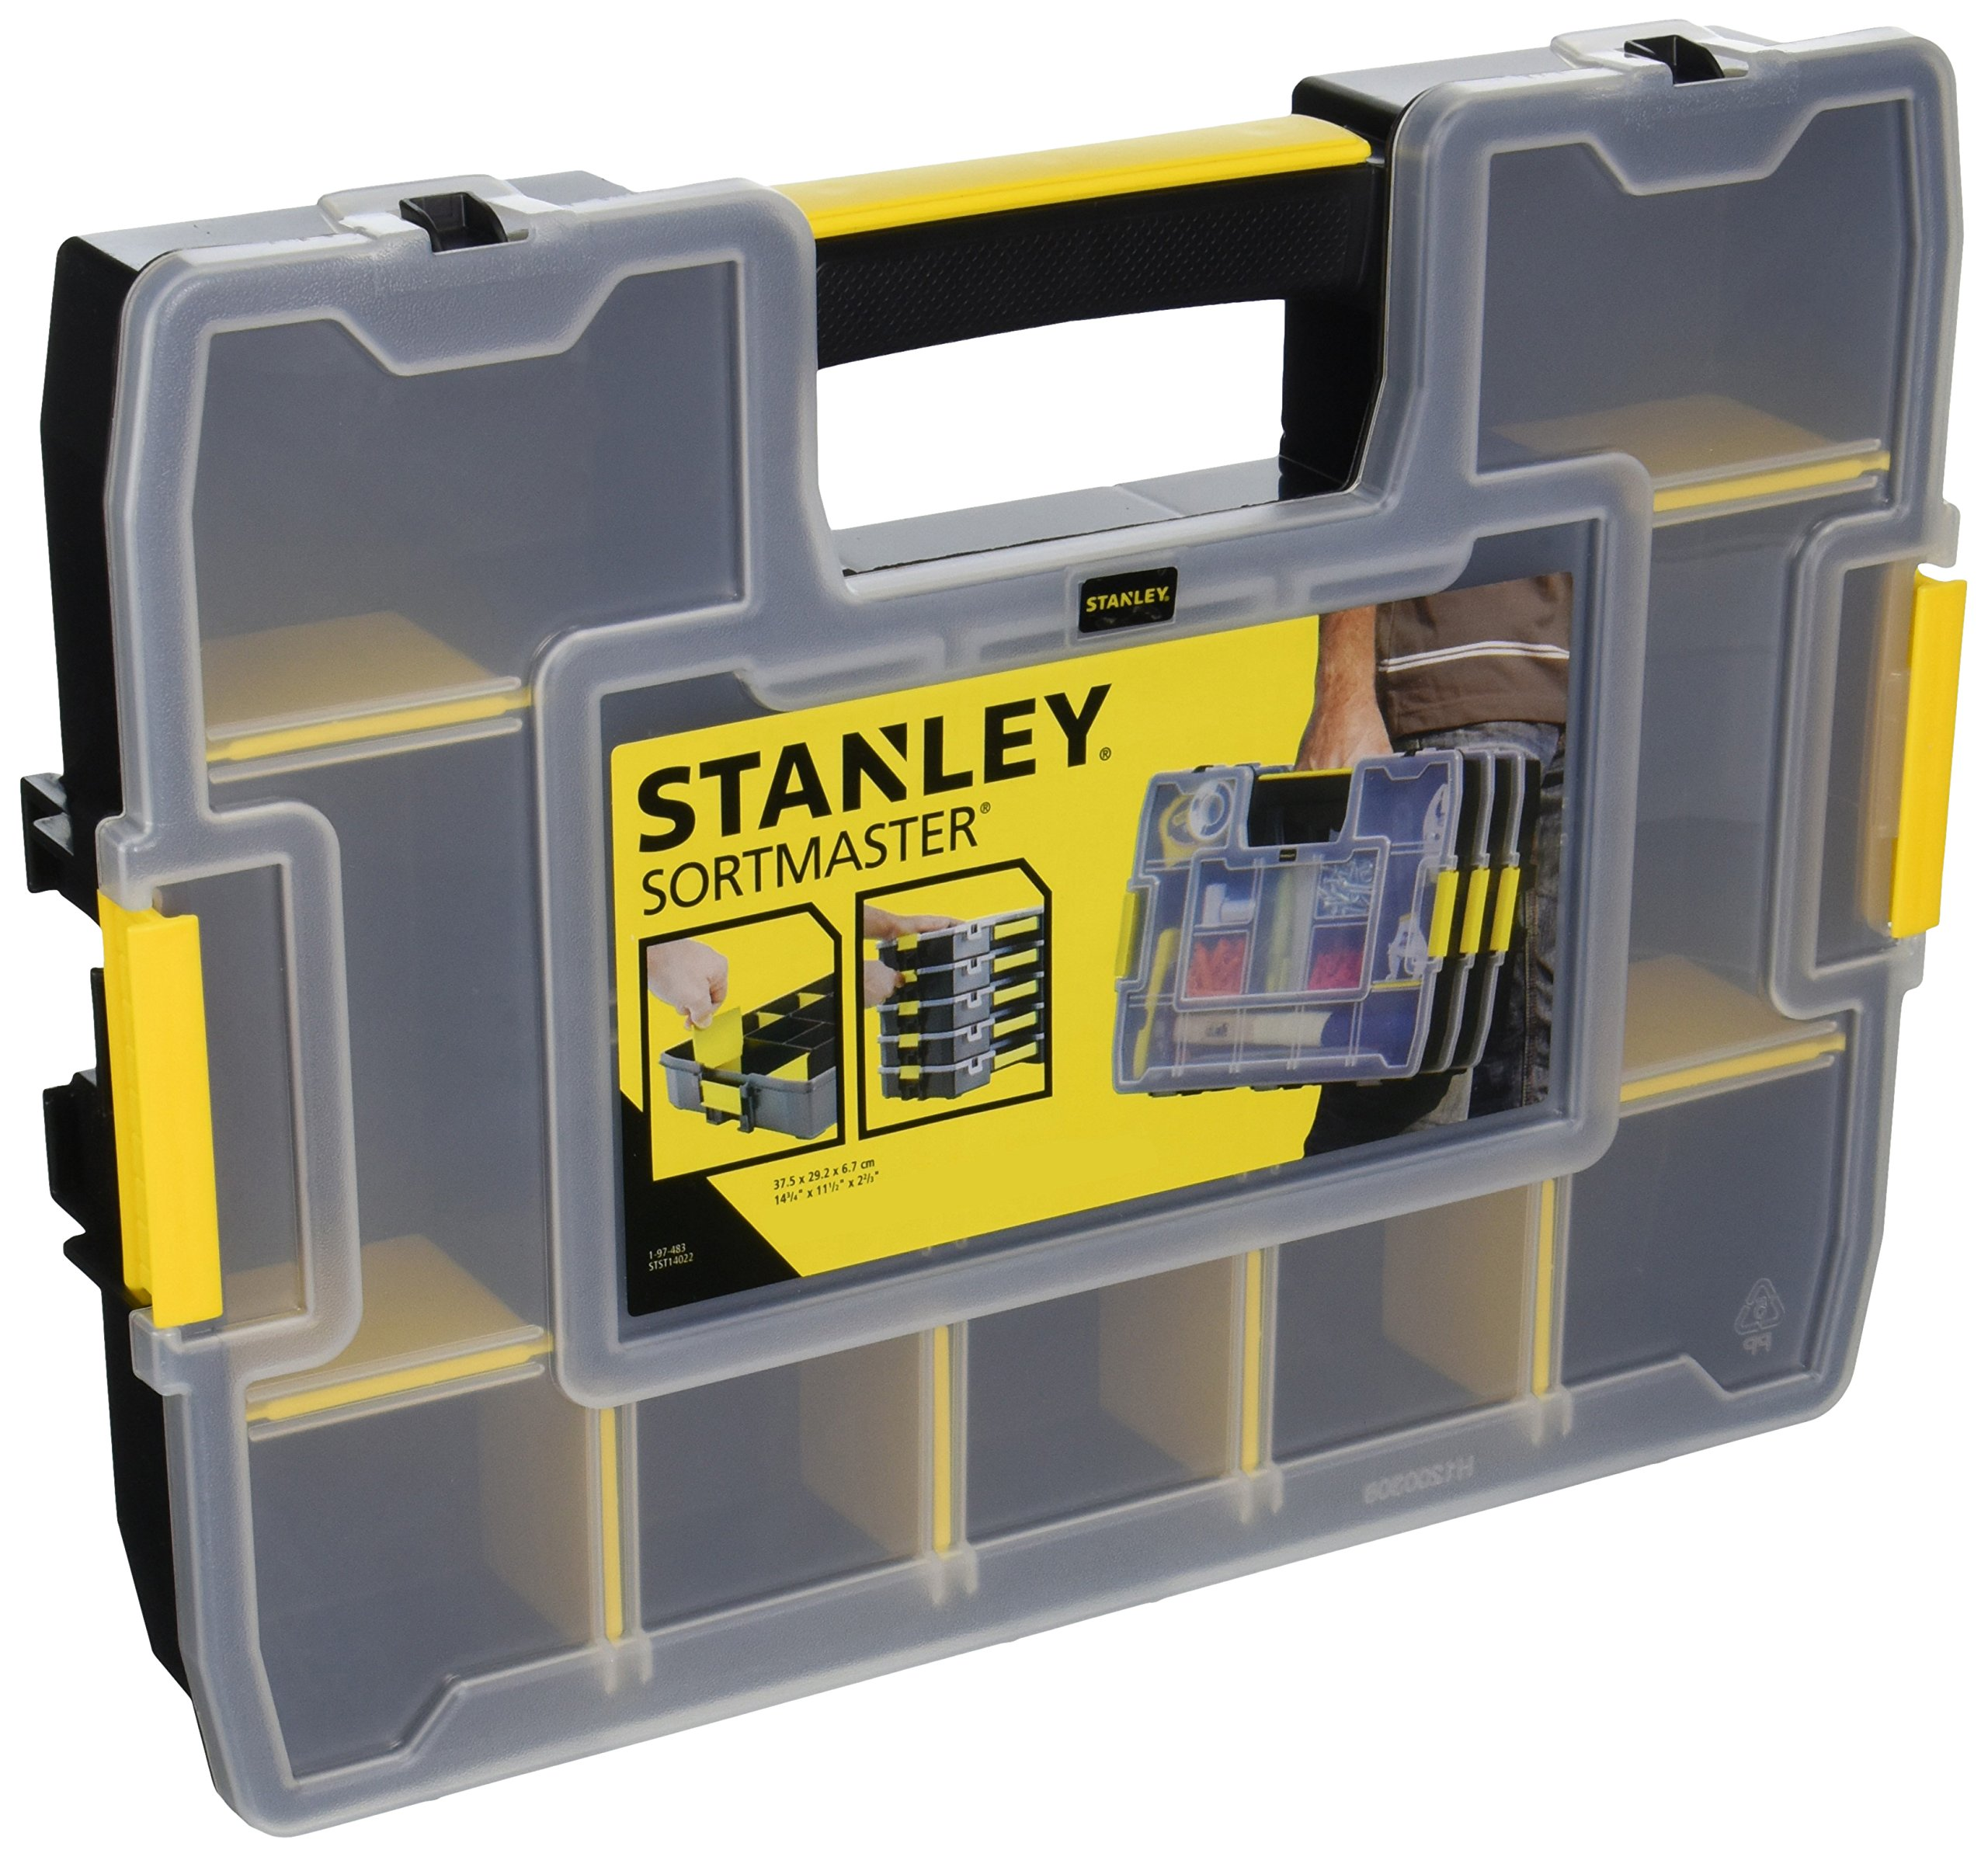 Tool Box Organizer Portable Garage Storage Cabinet Small